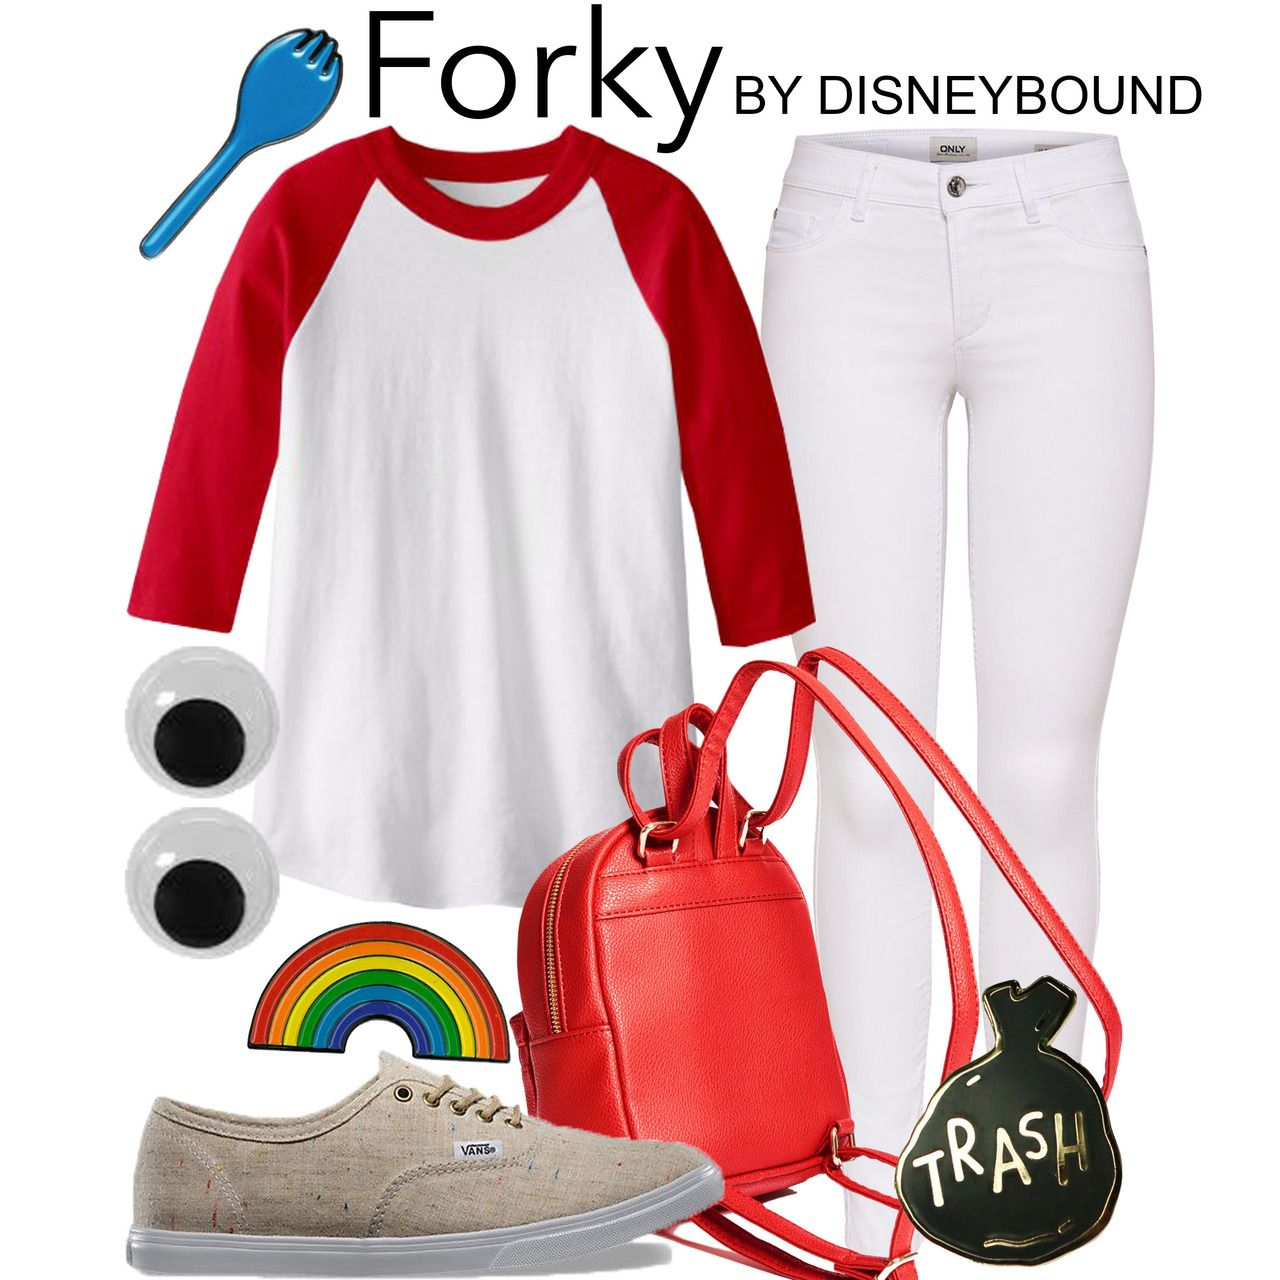 8fdb48e5f DisneyBound - Forky | Toy Story in 2019 | Disneybound, Disney bound ...